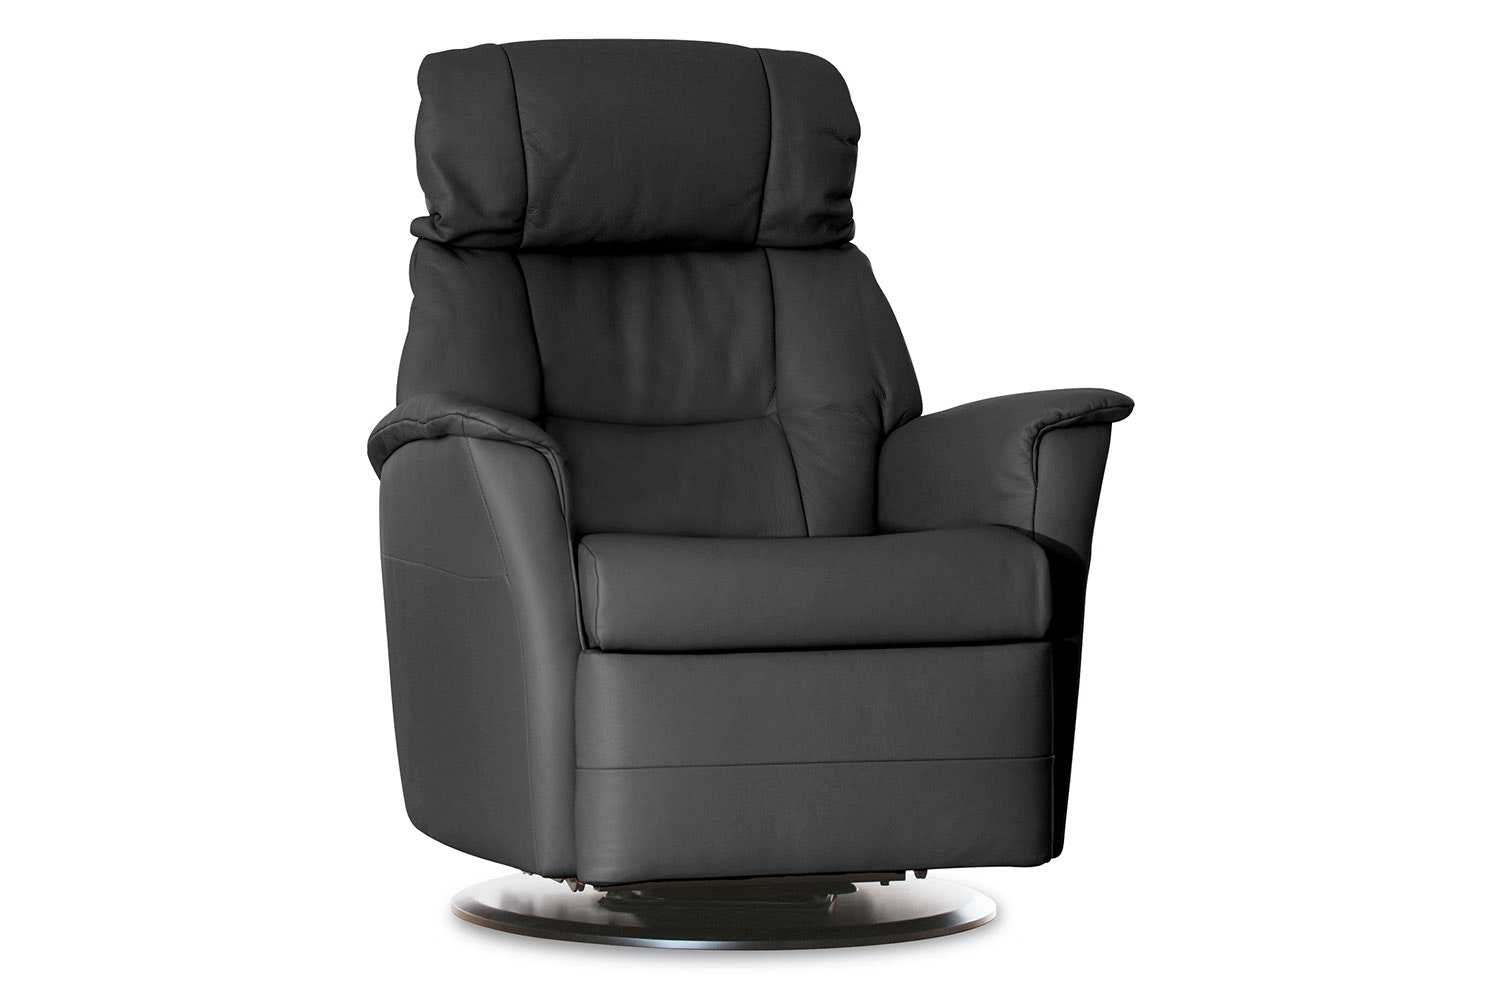 Ventura Leather Recliner Chair - Large - Trend - IMG